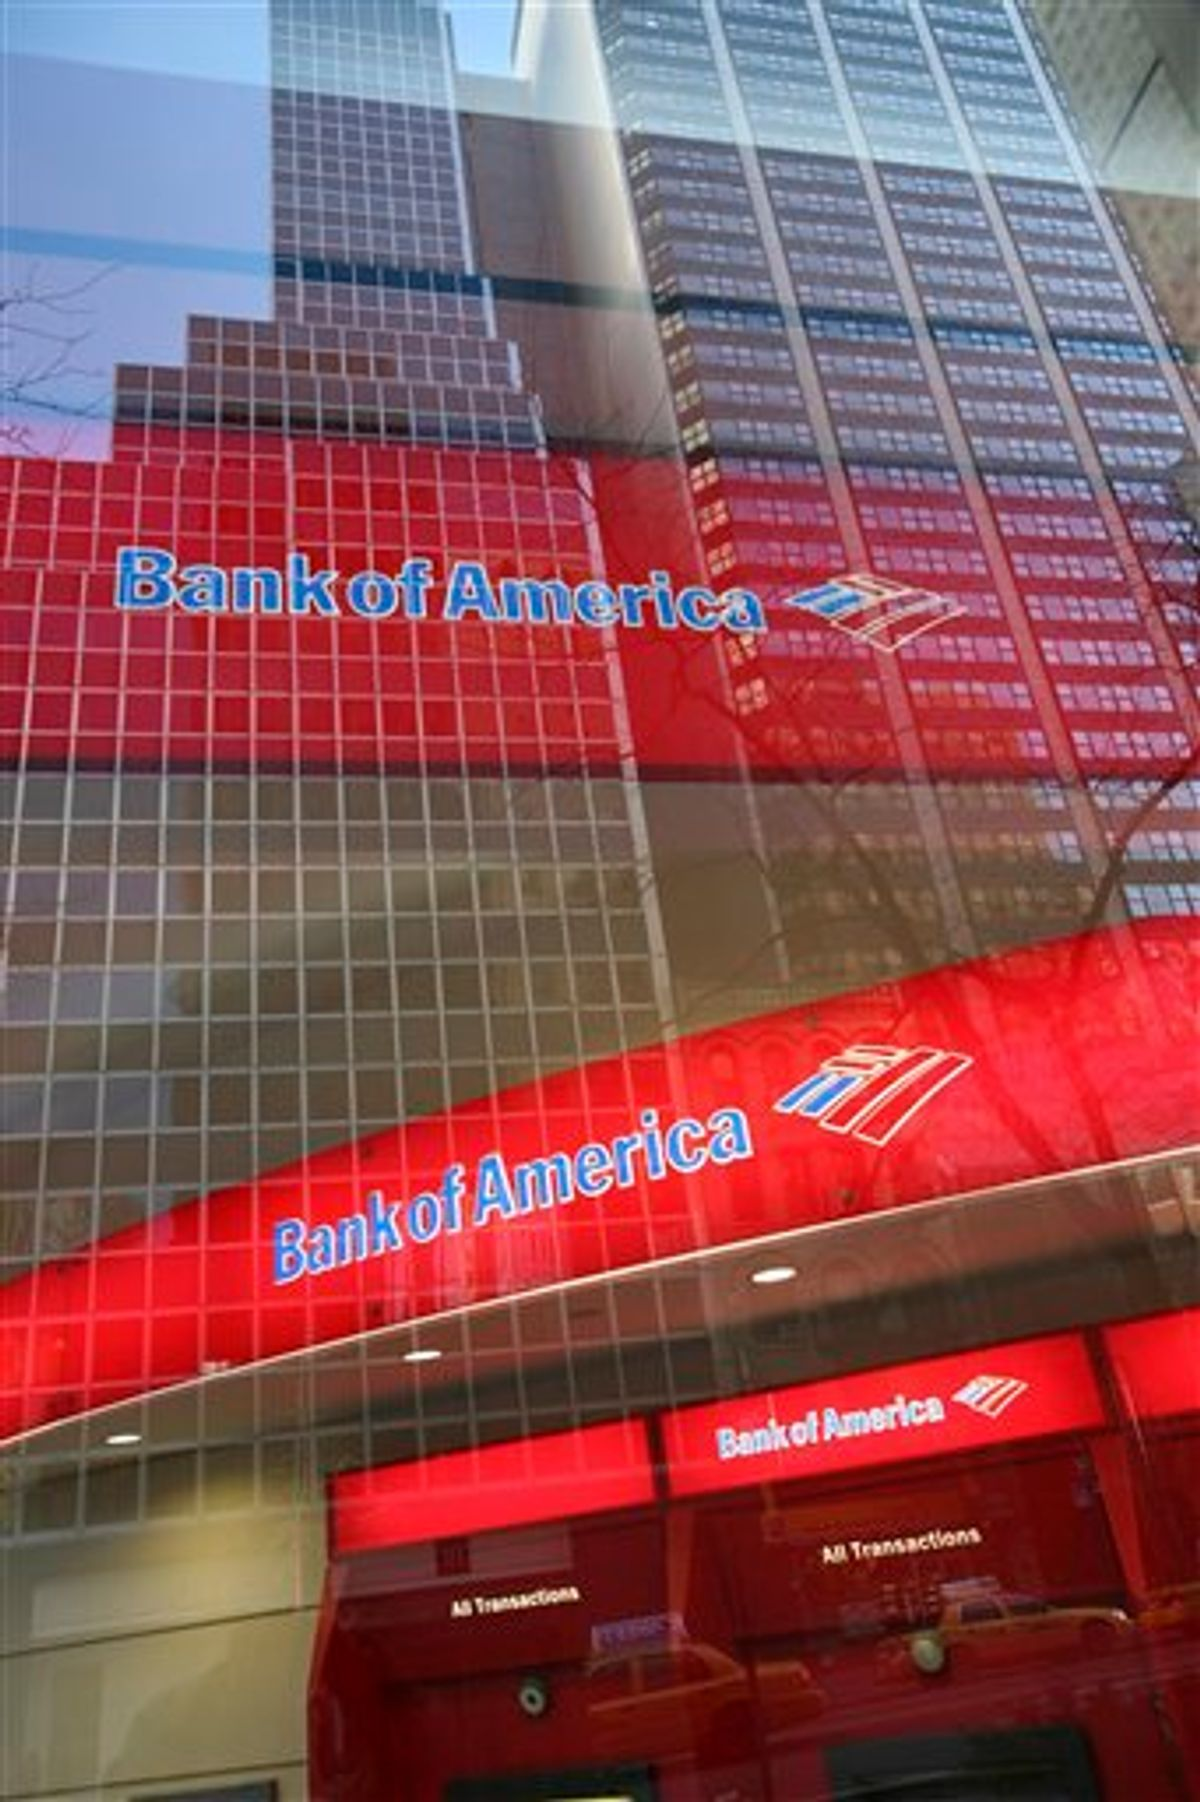 """FILE - In this Jan. 25, 2009 file photo, a Bank of America branch office is shown in New York. Bank of America, Citi, Wells Fargo Bank, JPMorgan Chase and other  banks got together in 1997 and formed a private company called Mortgage Electronic Registry Systems Inc., or MERS. Its motto: """"Process loans, not paperwork.""""(AP Photo/Mark Lennihan, file)  (AP)"""